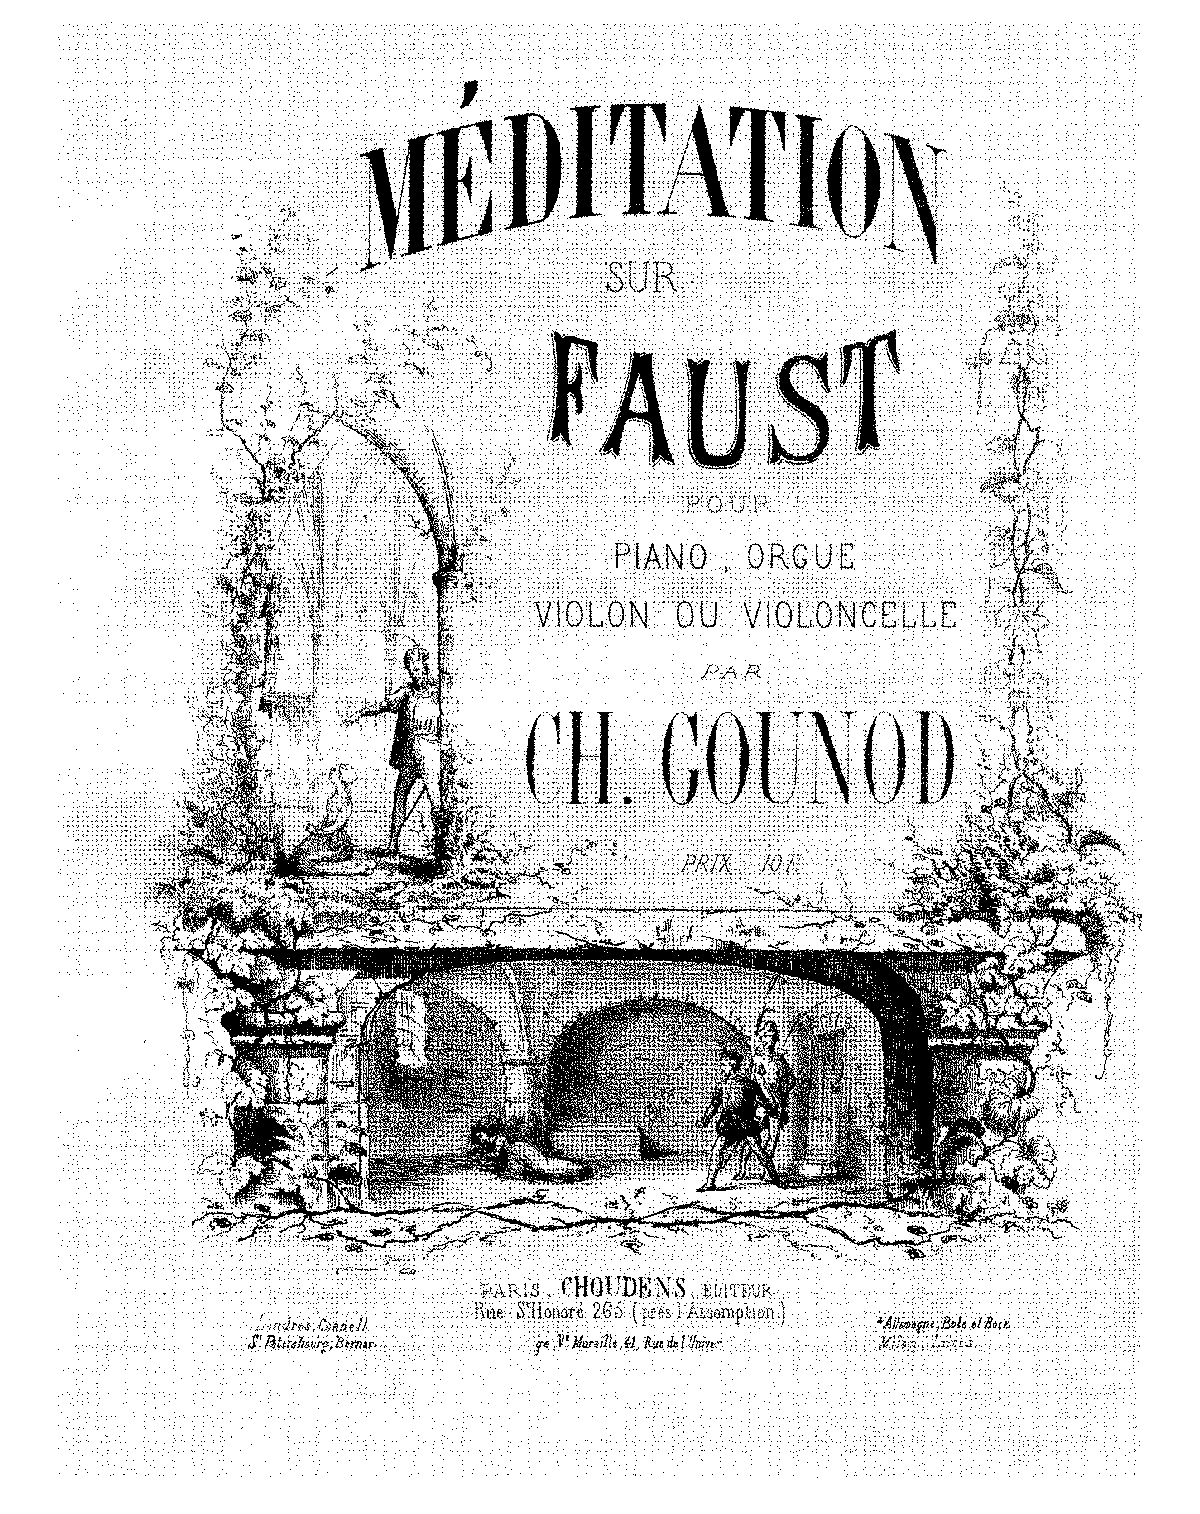 PMLP48987-Gounod - Meditation for Faust.pdf